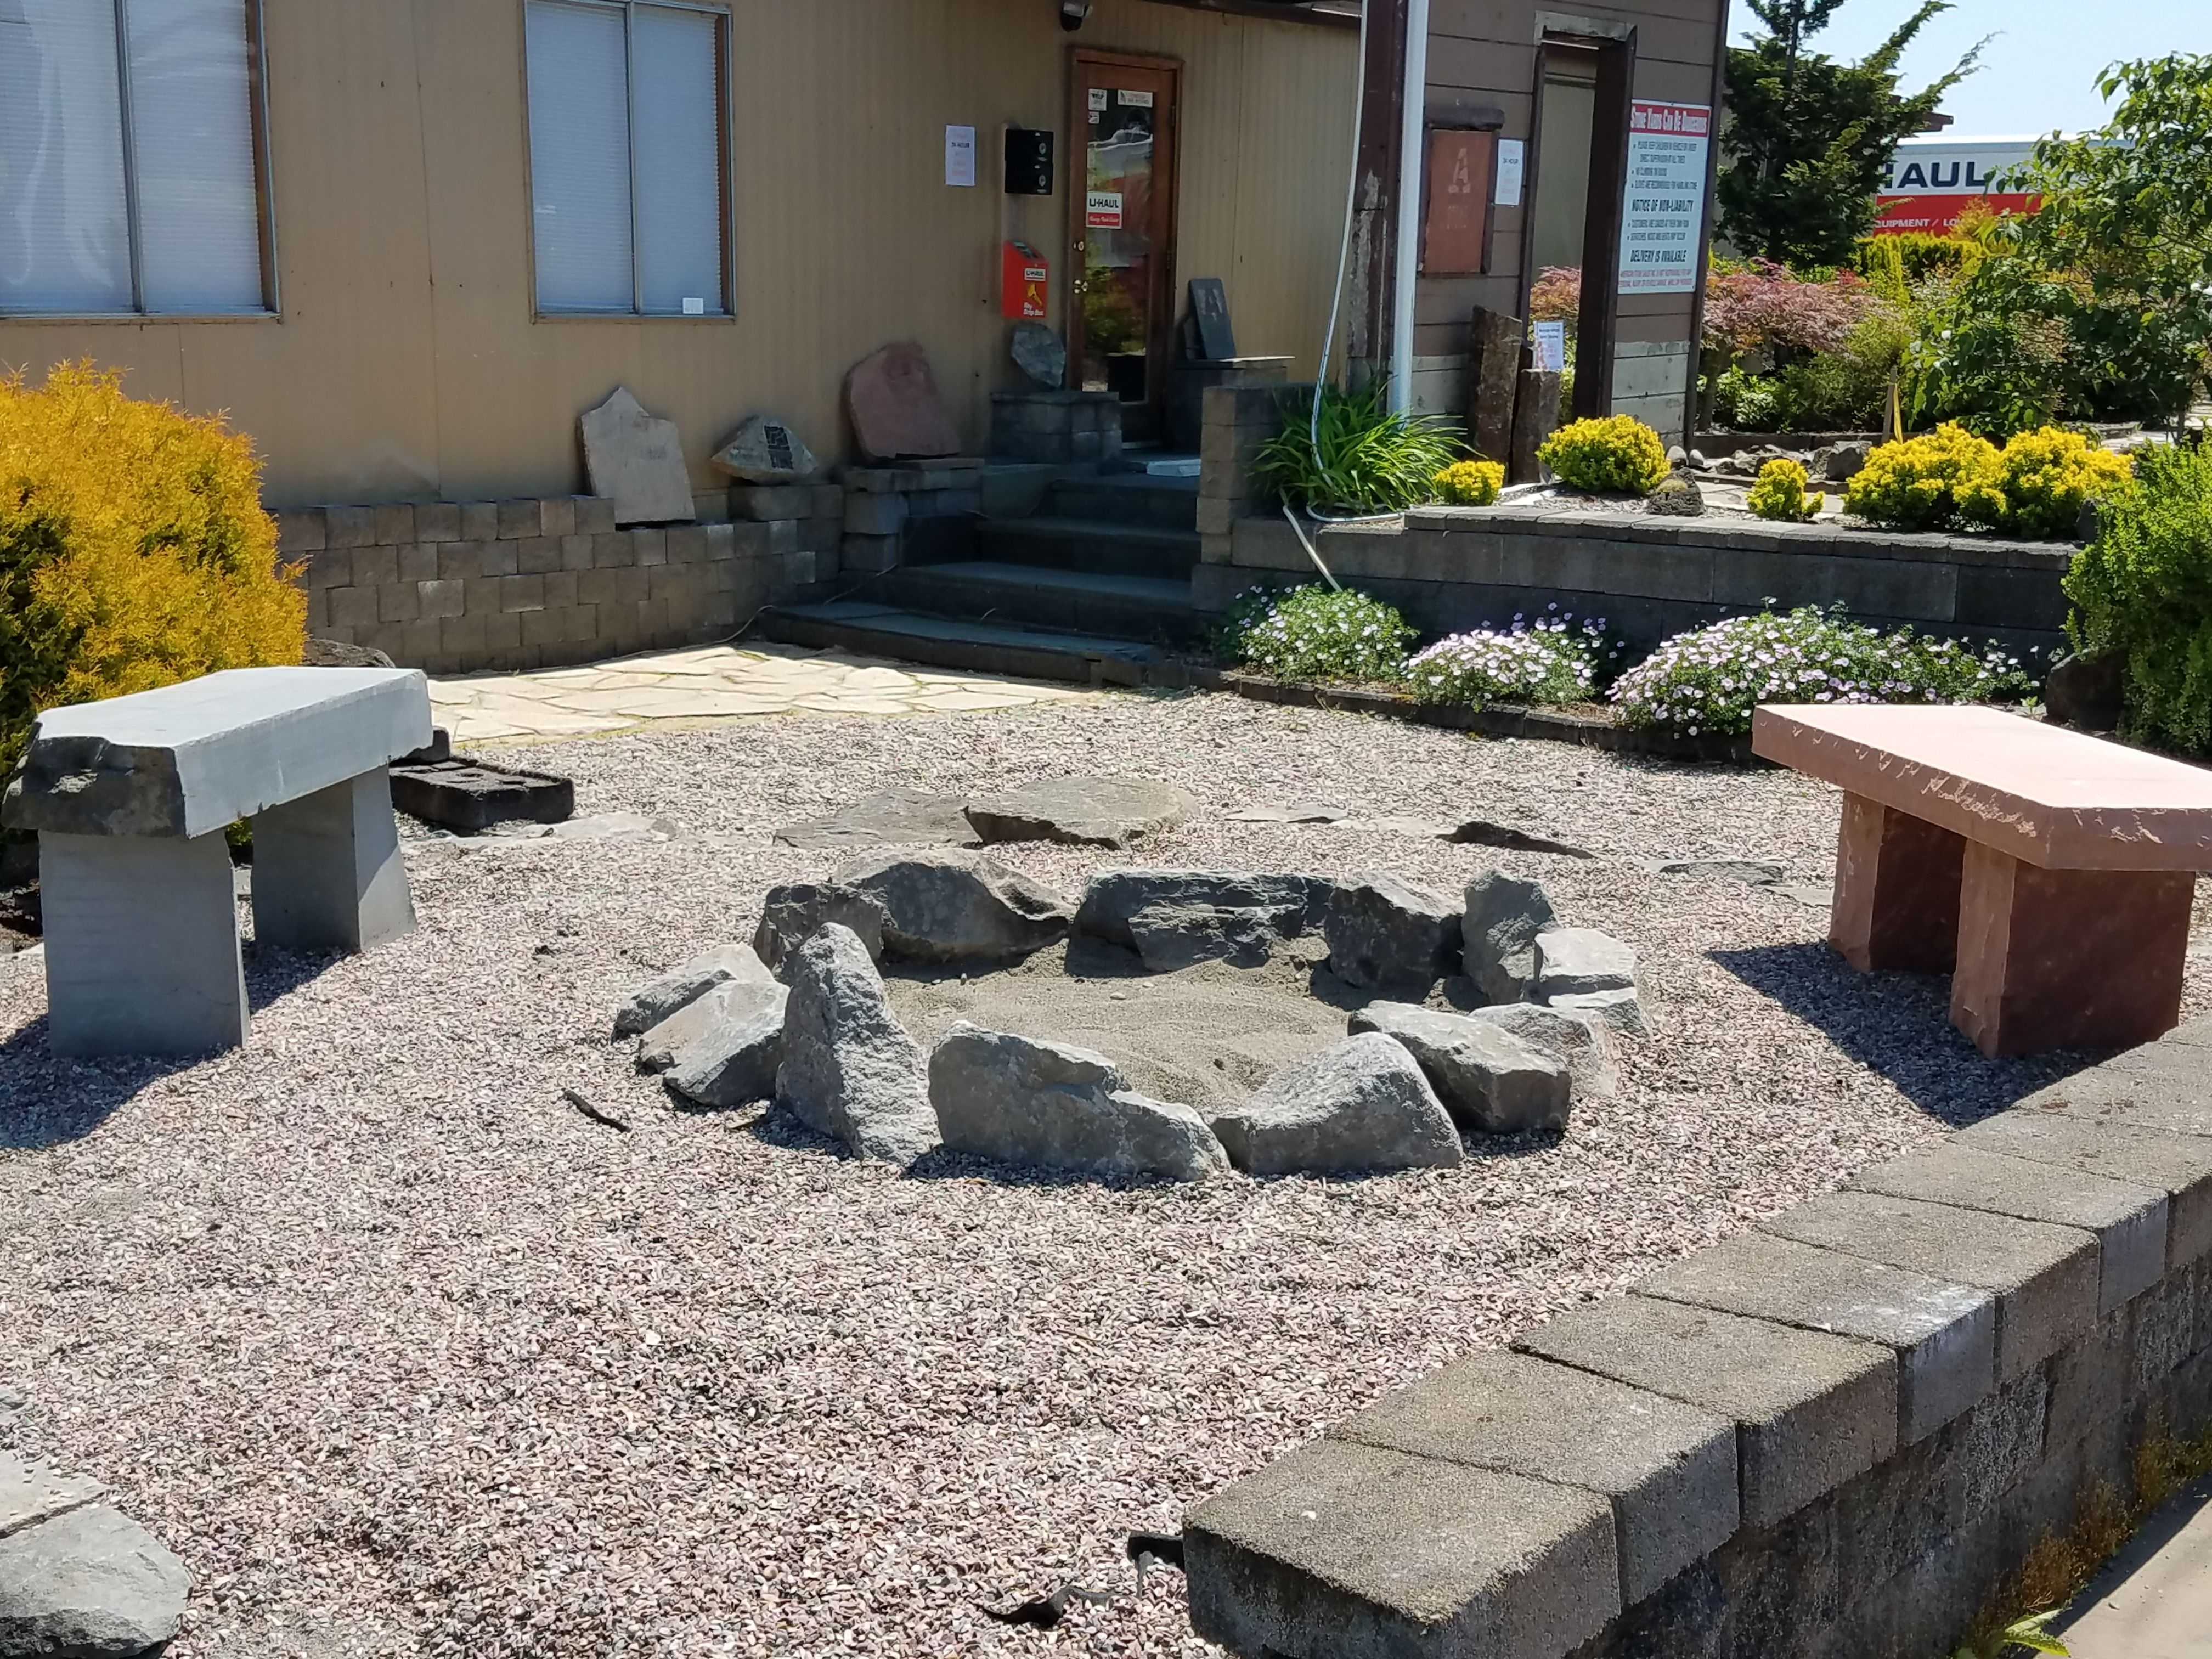 Easiest Diy Stone Fire Pit Ever, And It Does The